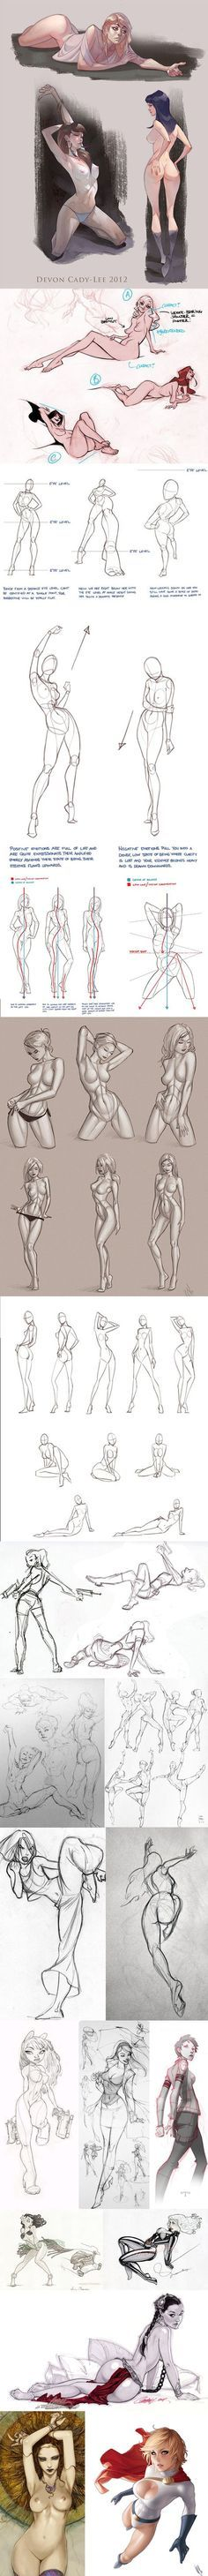 Some great anatomy tips, poses and overviews from Devon Cady-Lee, Warren Louw, J Scott Campbell, Chris Sanders and others!: